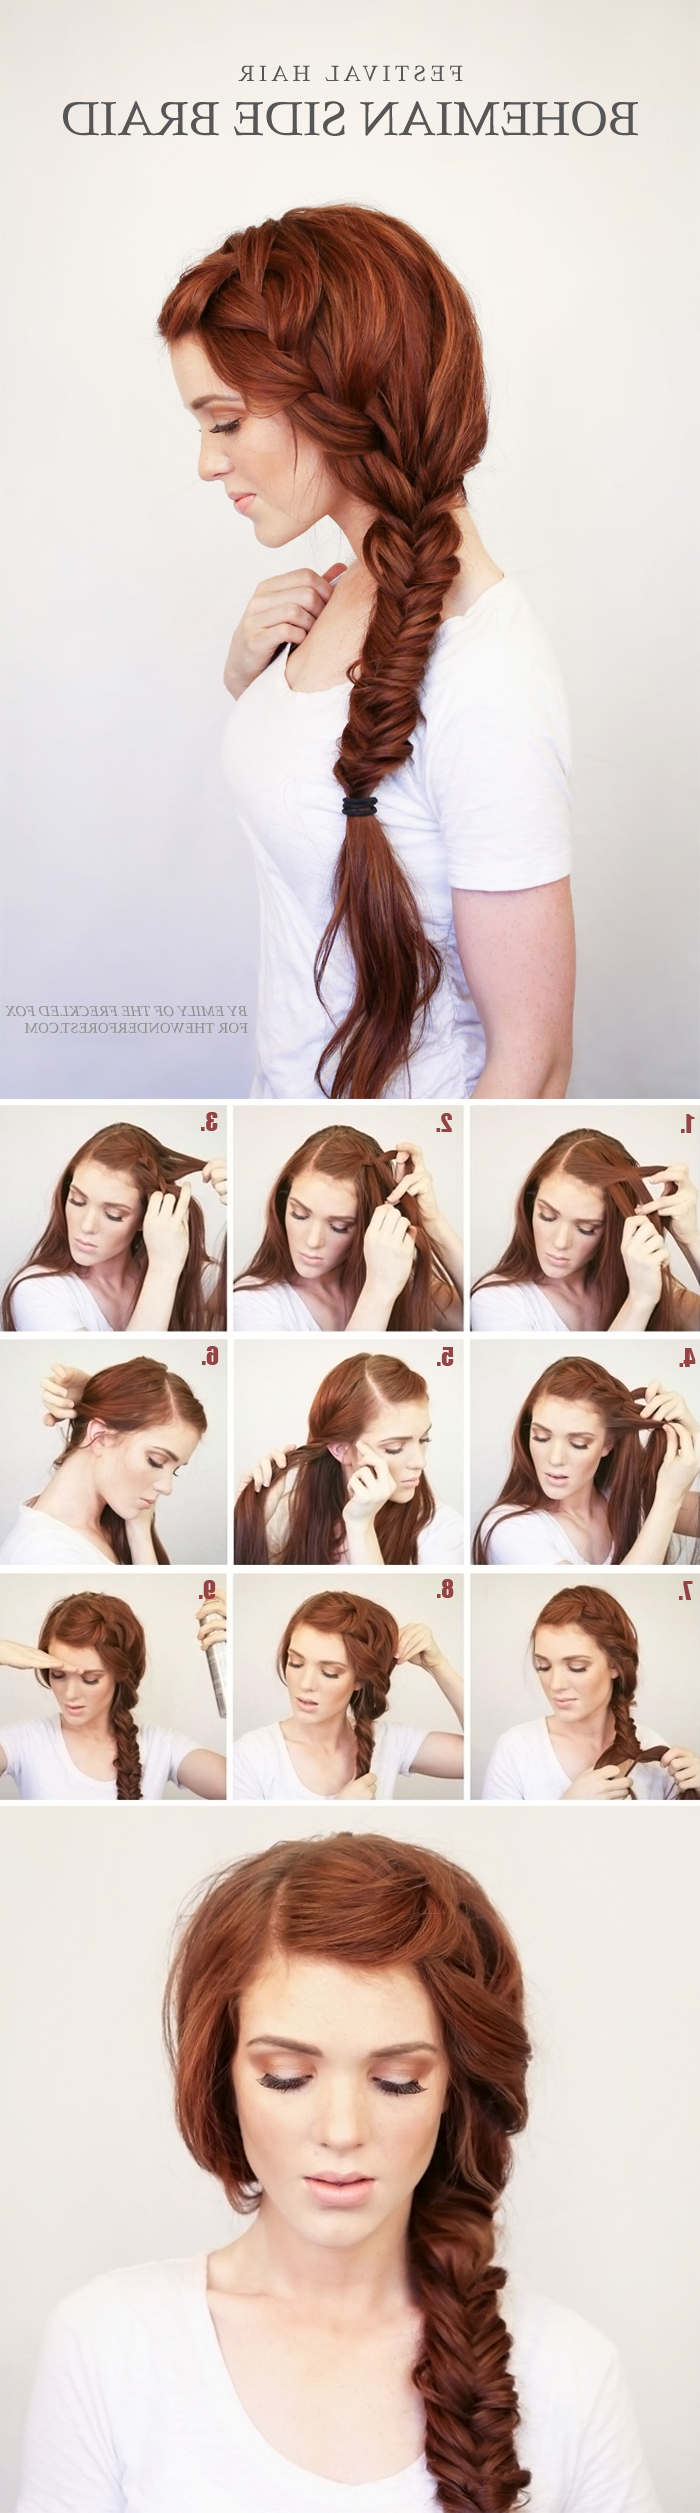 Tulle & Chantilly Intended For 2018 Short Side Braid Bridal Hairstyles (View 17 of 20)